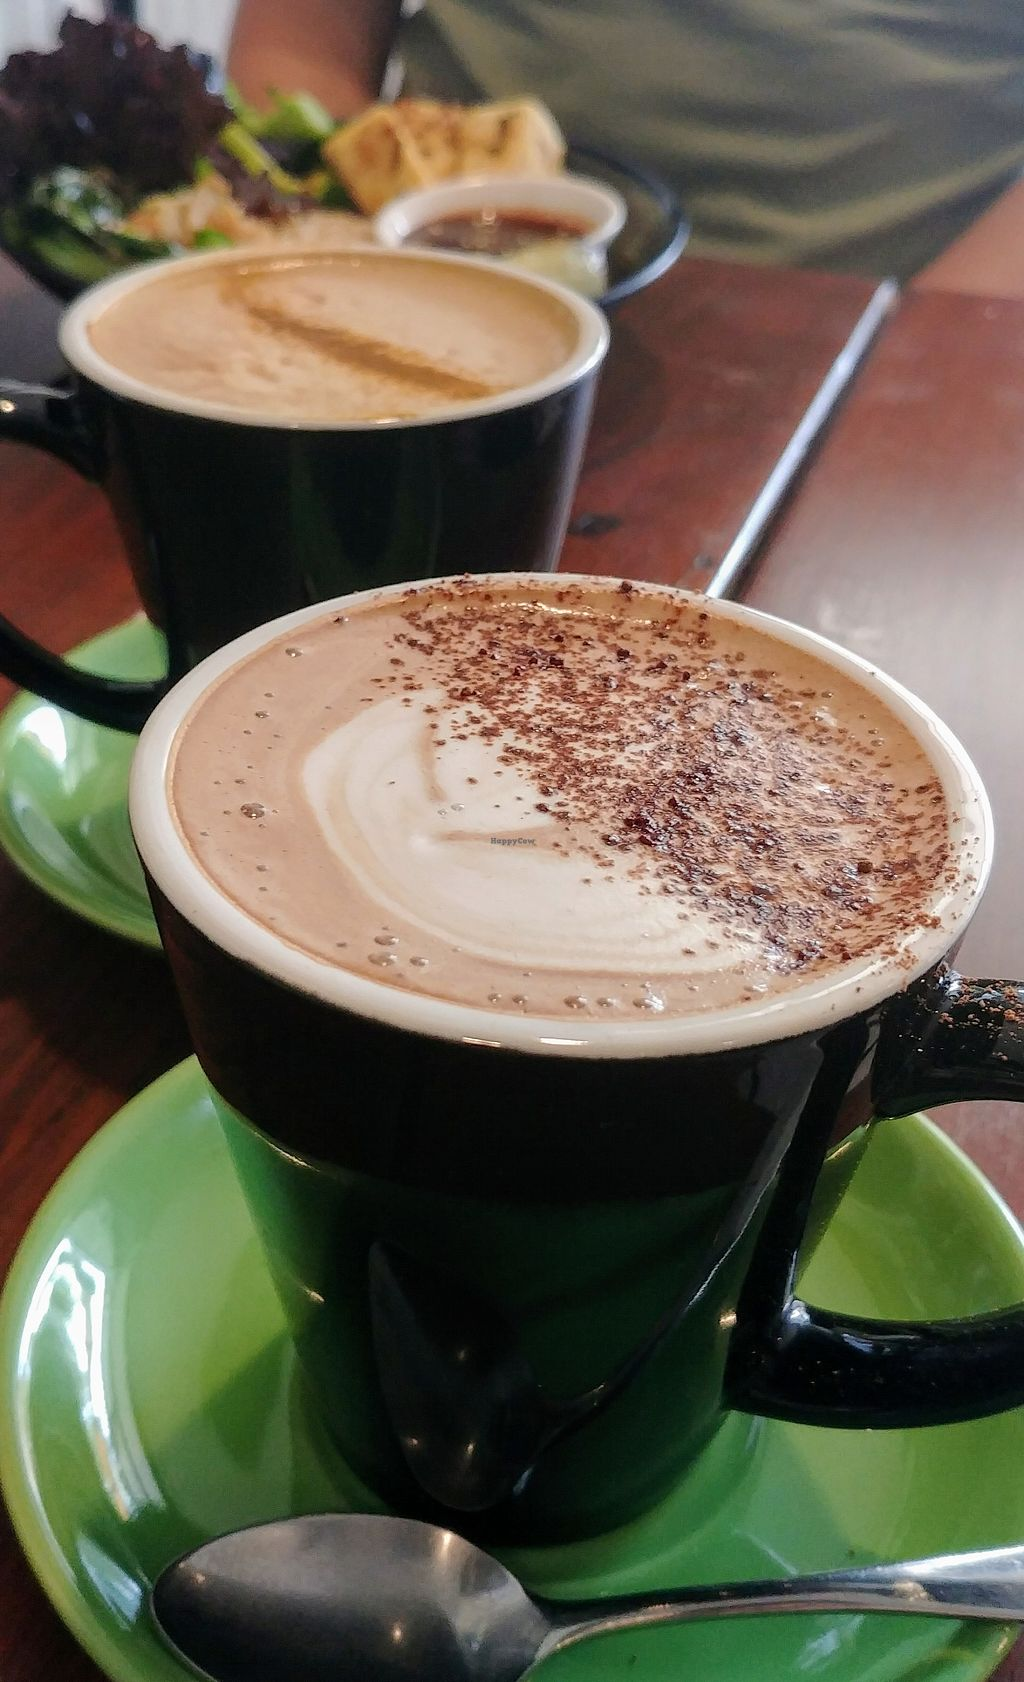 """Photo of SoulPod Foods  by <a href=""""/members/profile/karlaess"""">karlaess</a> <br/>Dirty chai (back) & hot chocolate (front) <br/> March 2, 2018  - <a href='/contact/abuse/image/103284/365610'>Report</a>"""